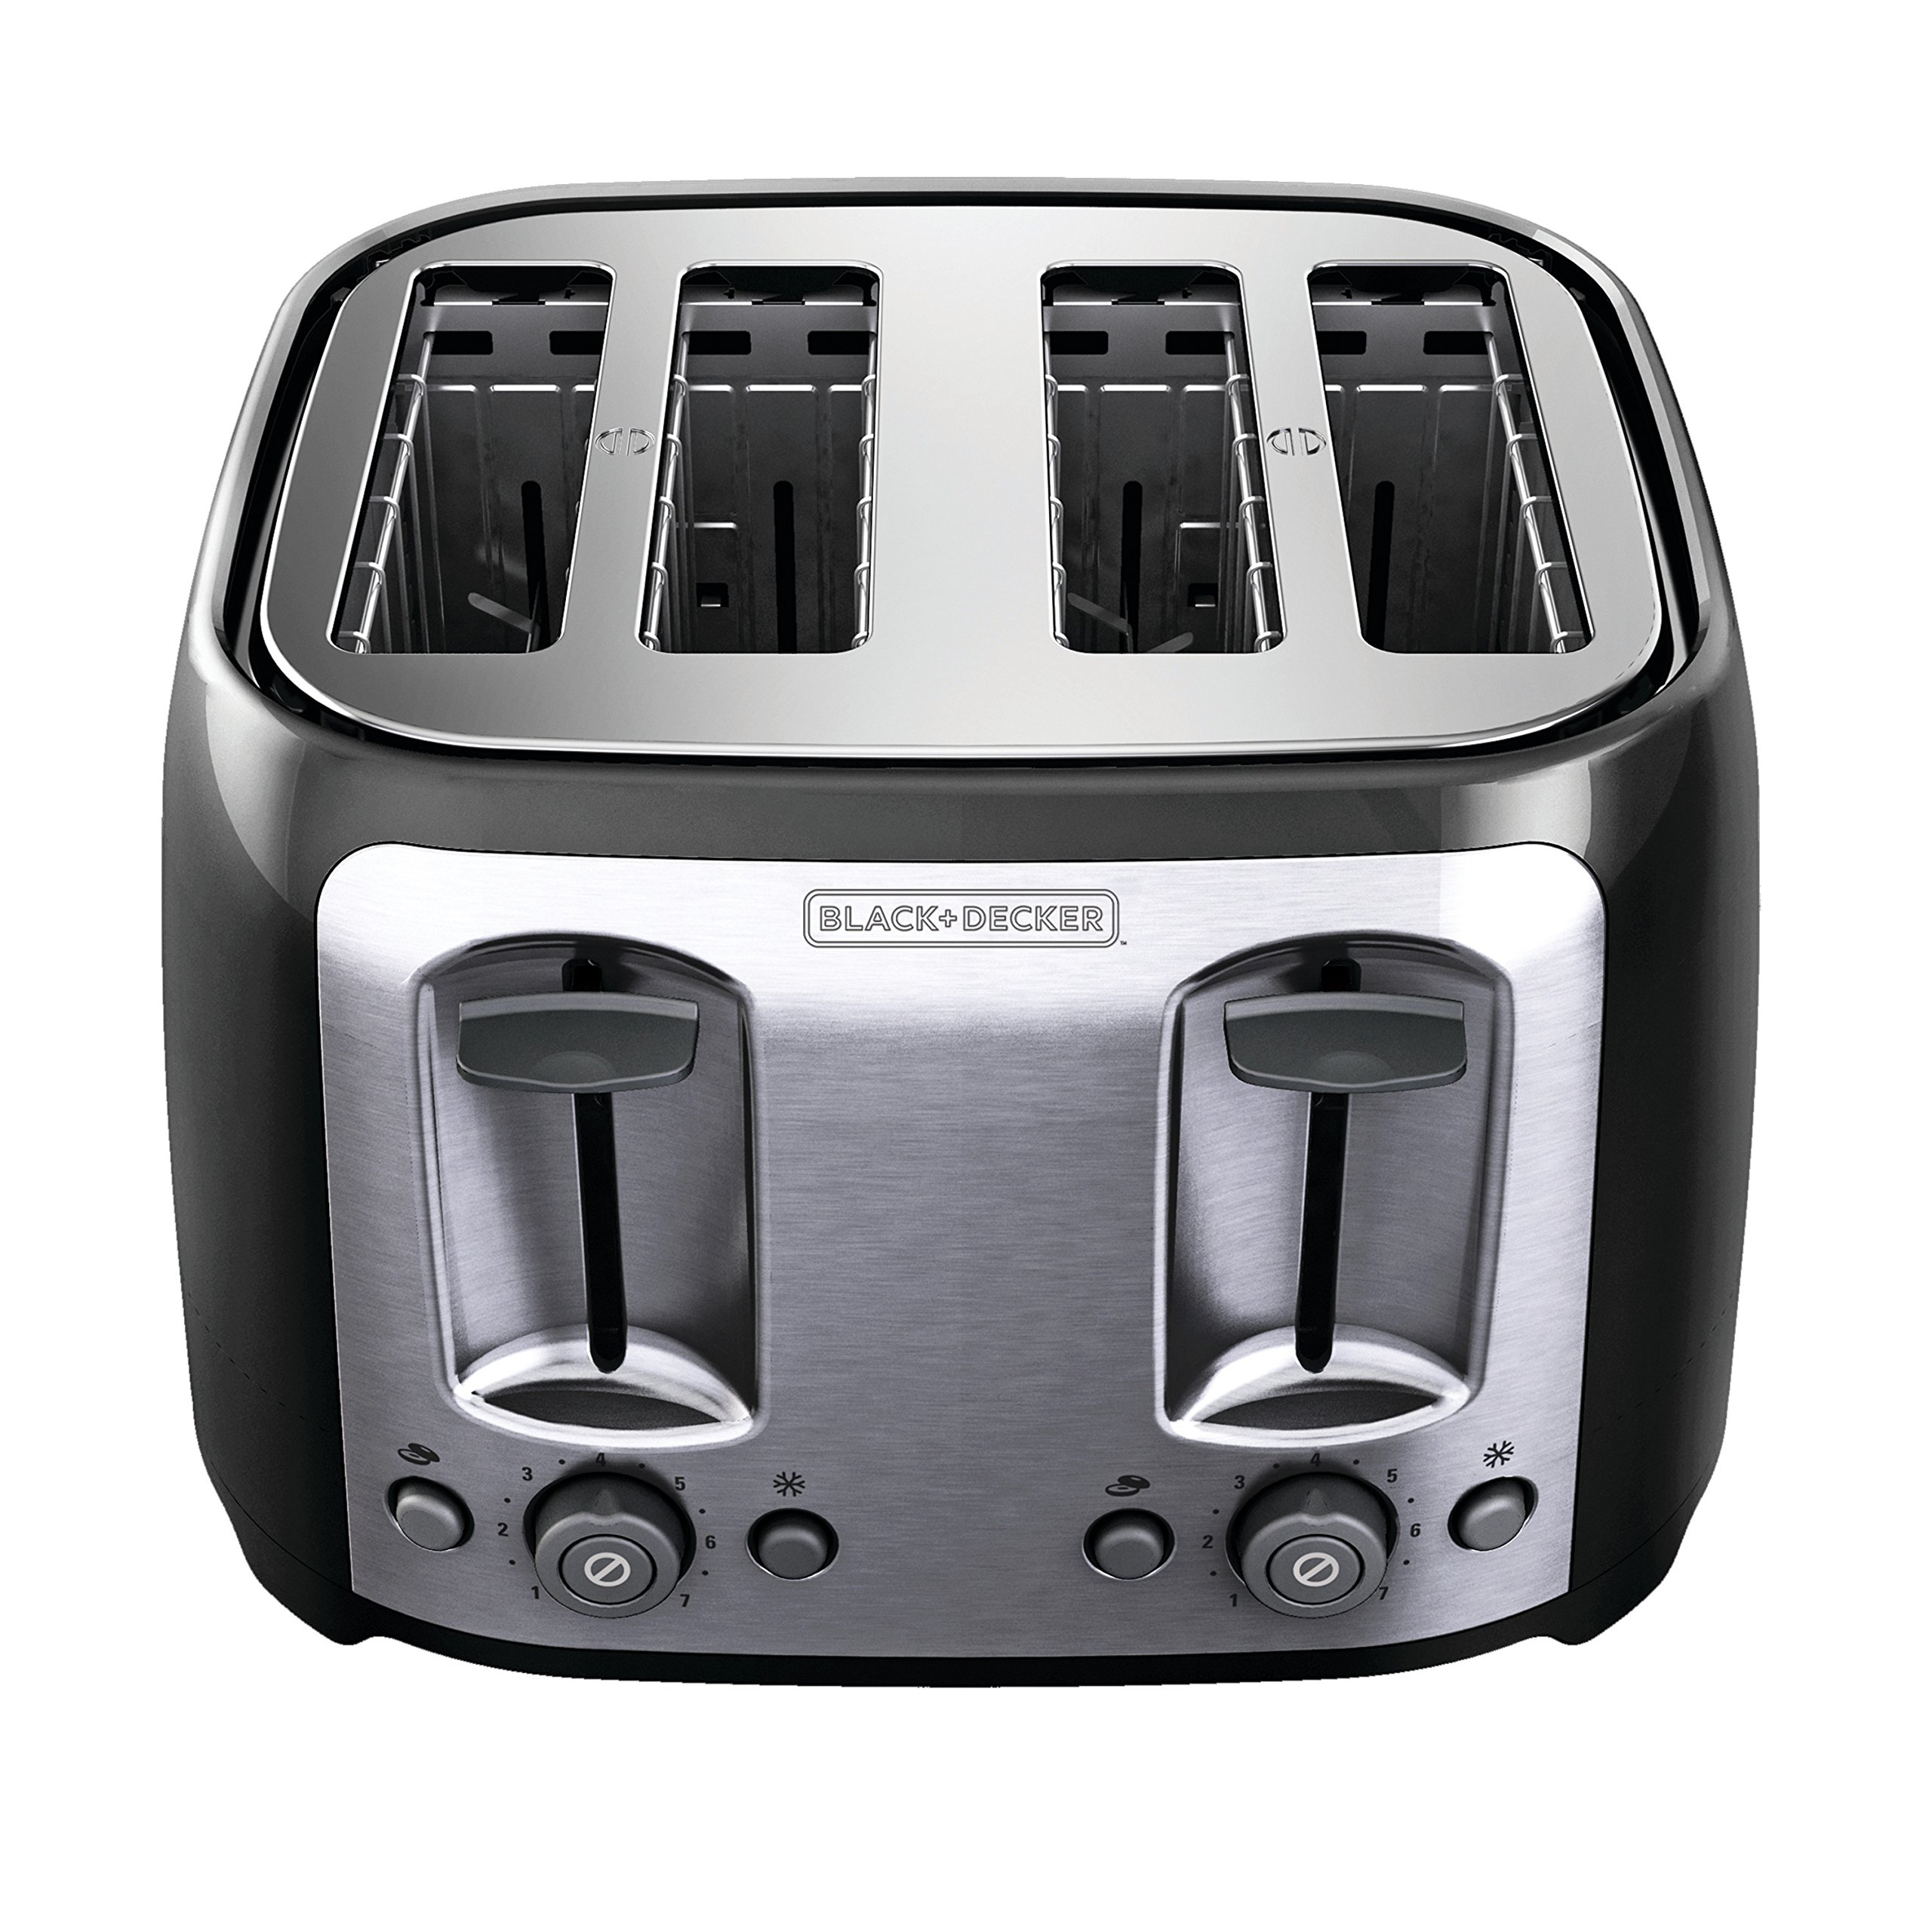 BLACK+DECKER 4-Slice Toaster, Classic Oval, Black with Stainless Steel Accents, TR1478BD by BLACK+DECKER (Image #7)